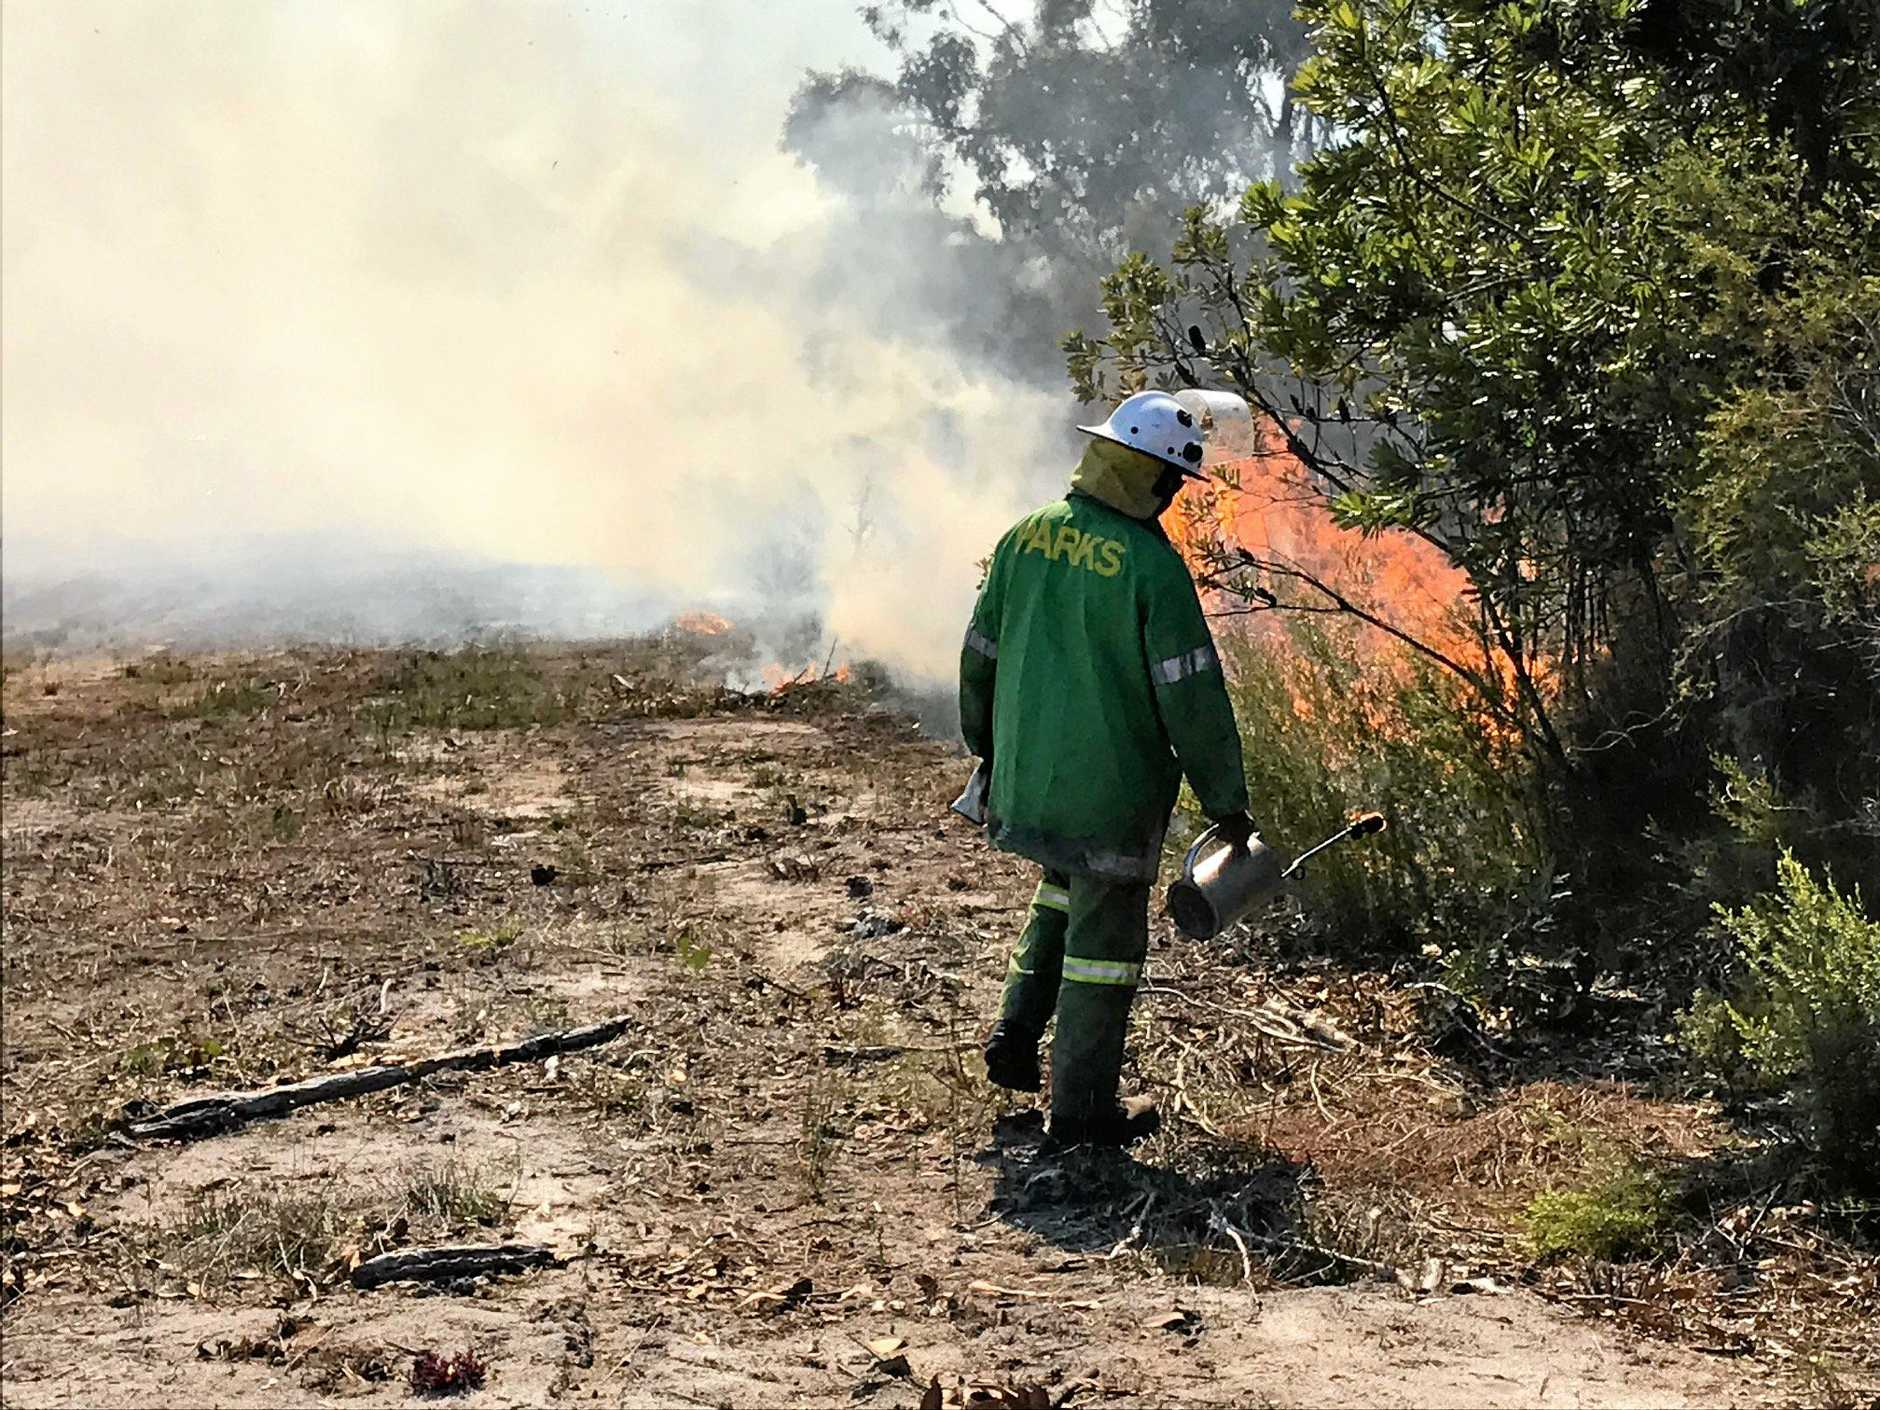 Queensland Parks and Wildlife is conducting a controlled burn in Noosa National Park on Tuesday.